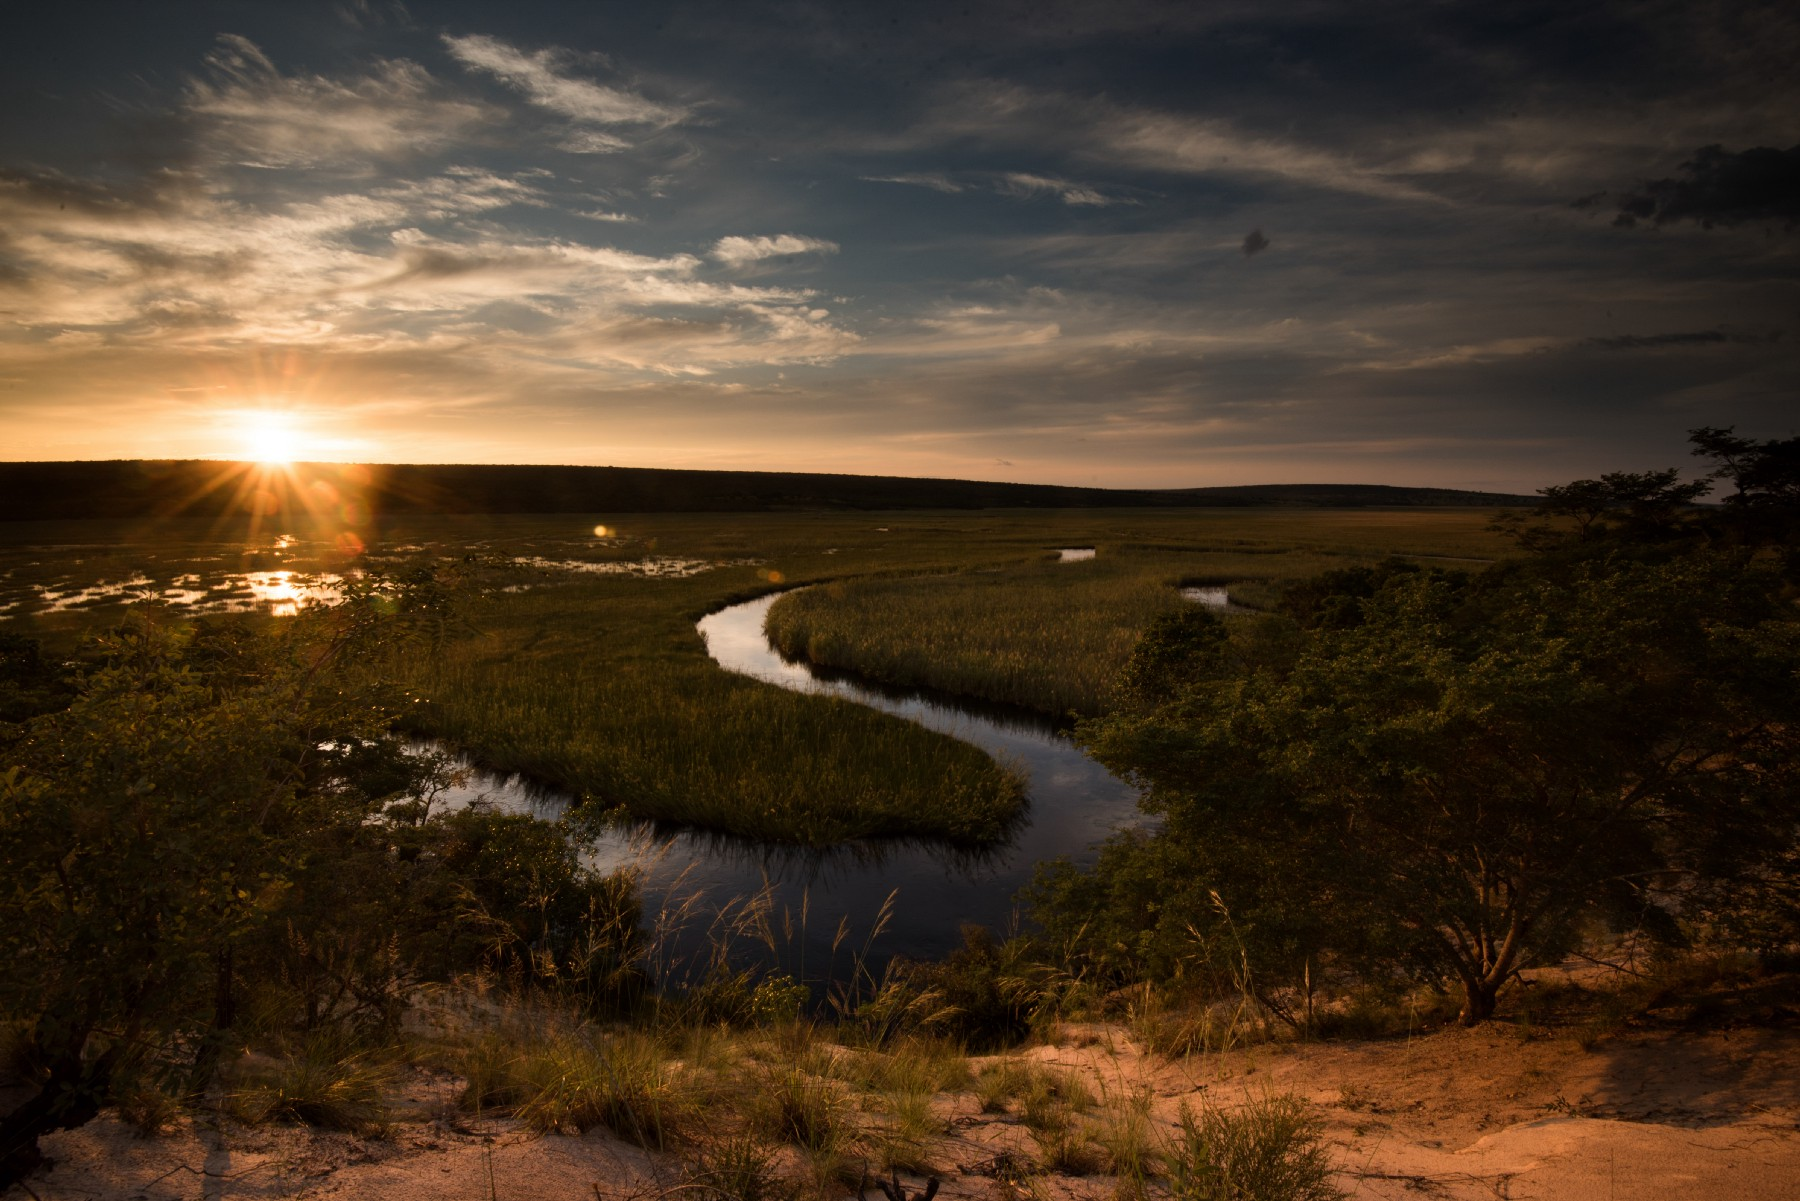 The Cuanavale River, which is fed by the source lakes that Boyes and his team are striving to protect in the Okavango River Delta. Photo: Chris Boyes